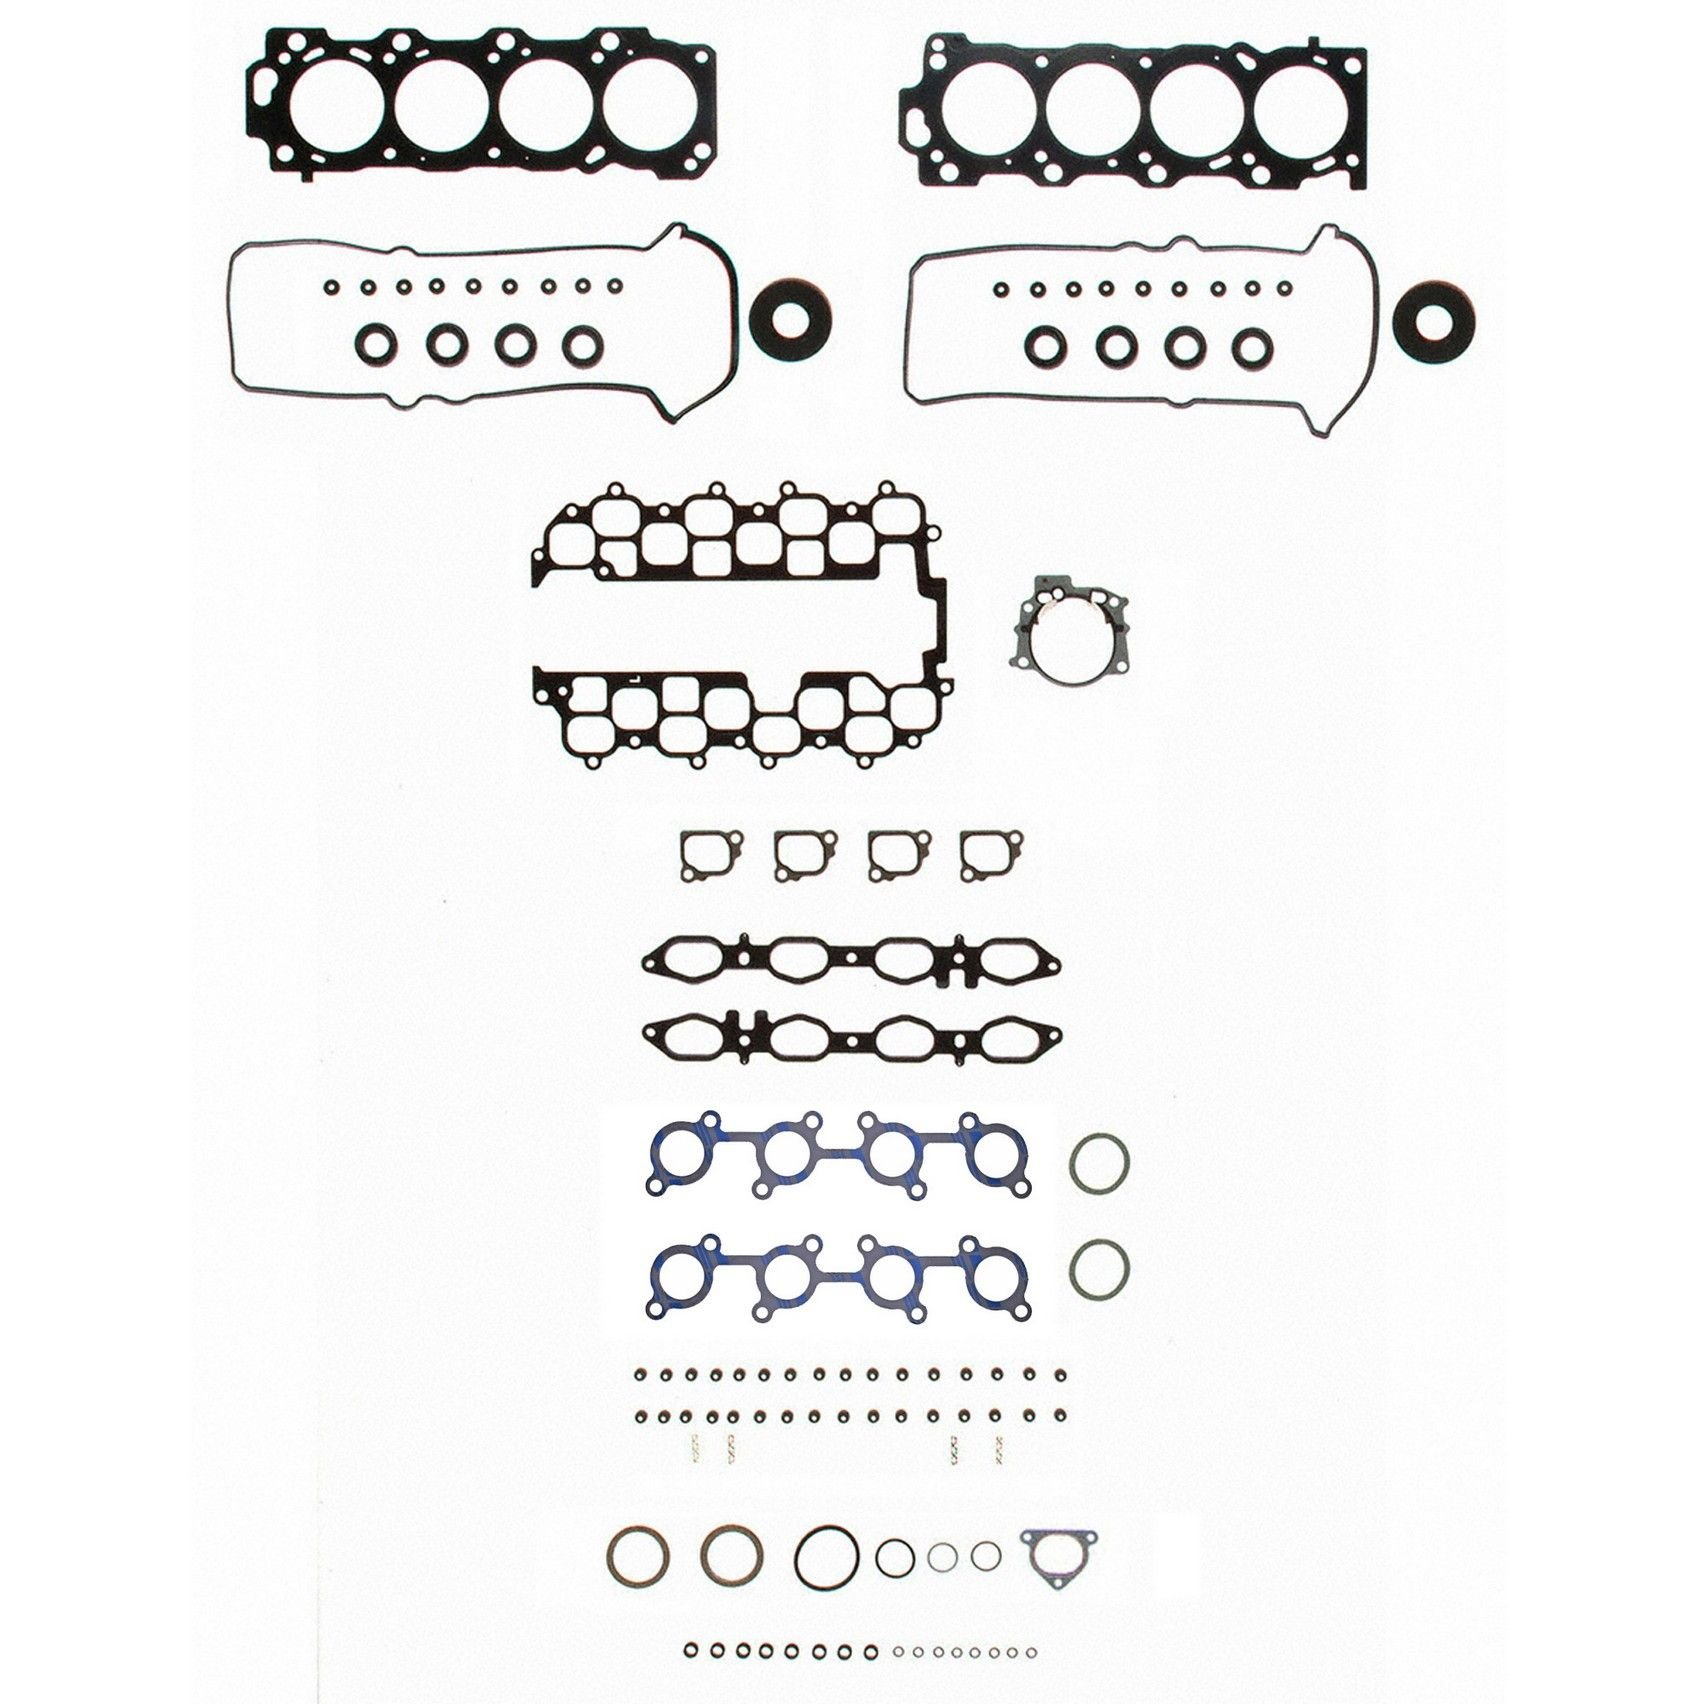 Toyota Land Cruiser Engine Cylinder Head Gasket Set Replacement 1973 Gaskets 1998 8 Cyl 47l Felpro Hs 26226 Pt Bolts Not Incl Bolt Recommended Permadry